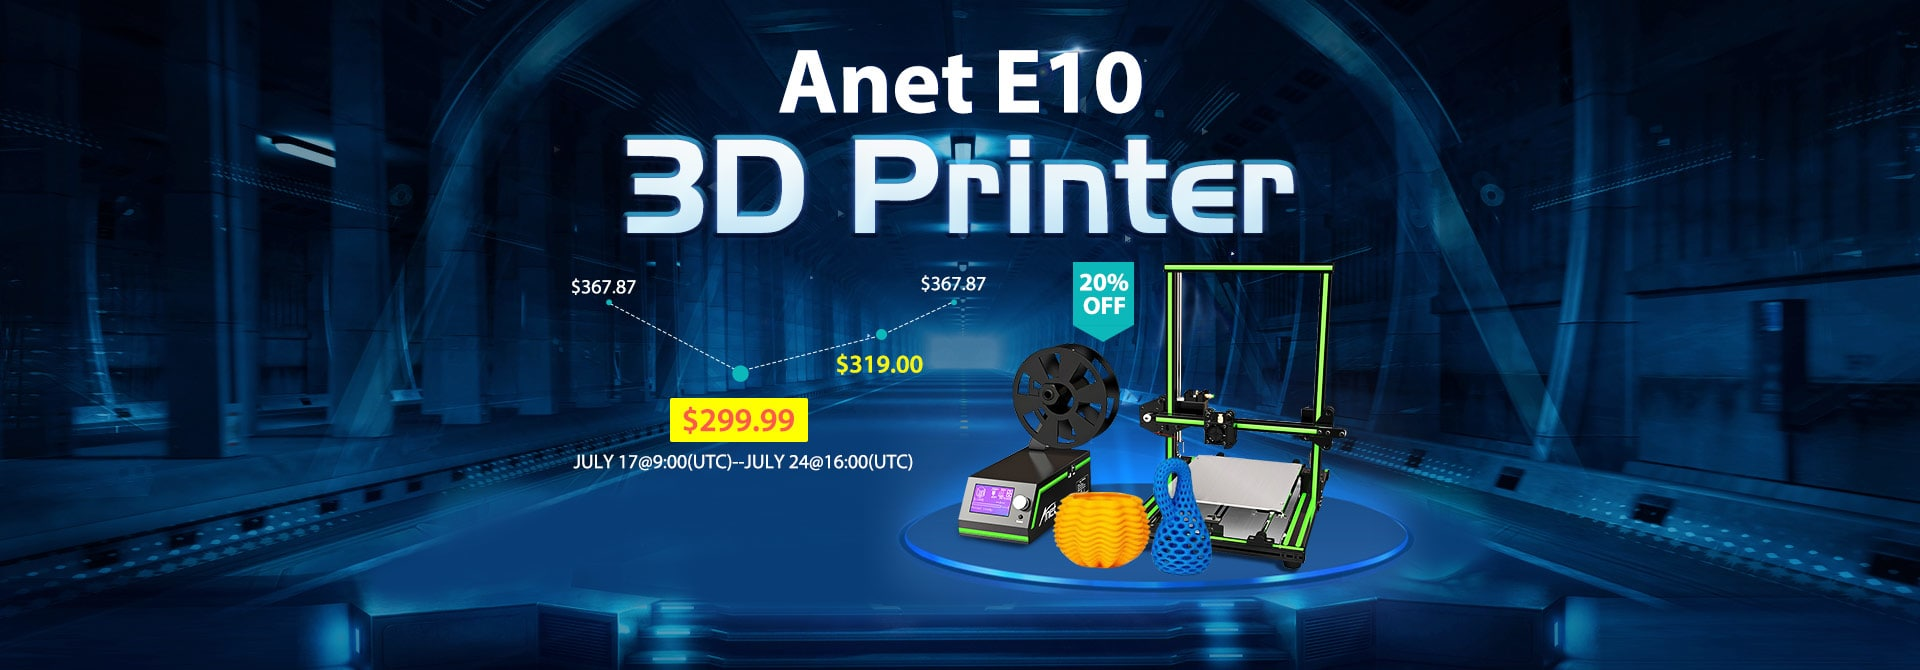 The Anet E10 3D Printer Flash Sale from Just $299.99